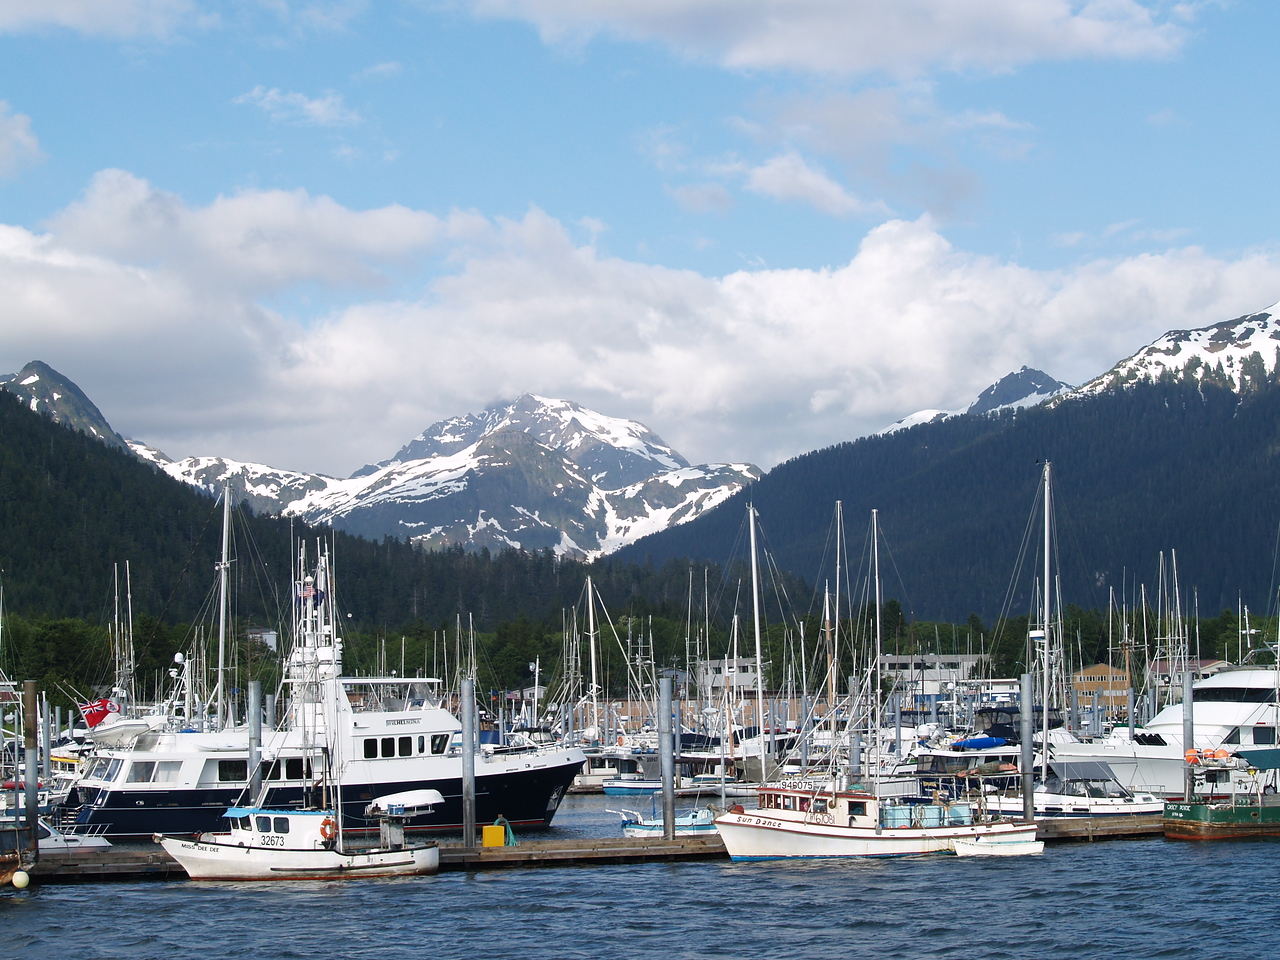 Looking back at Sitka from the channel (2007).